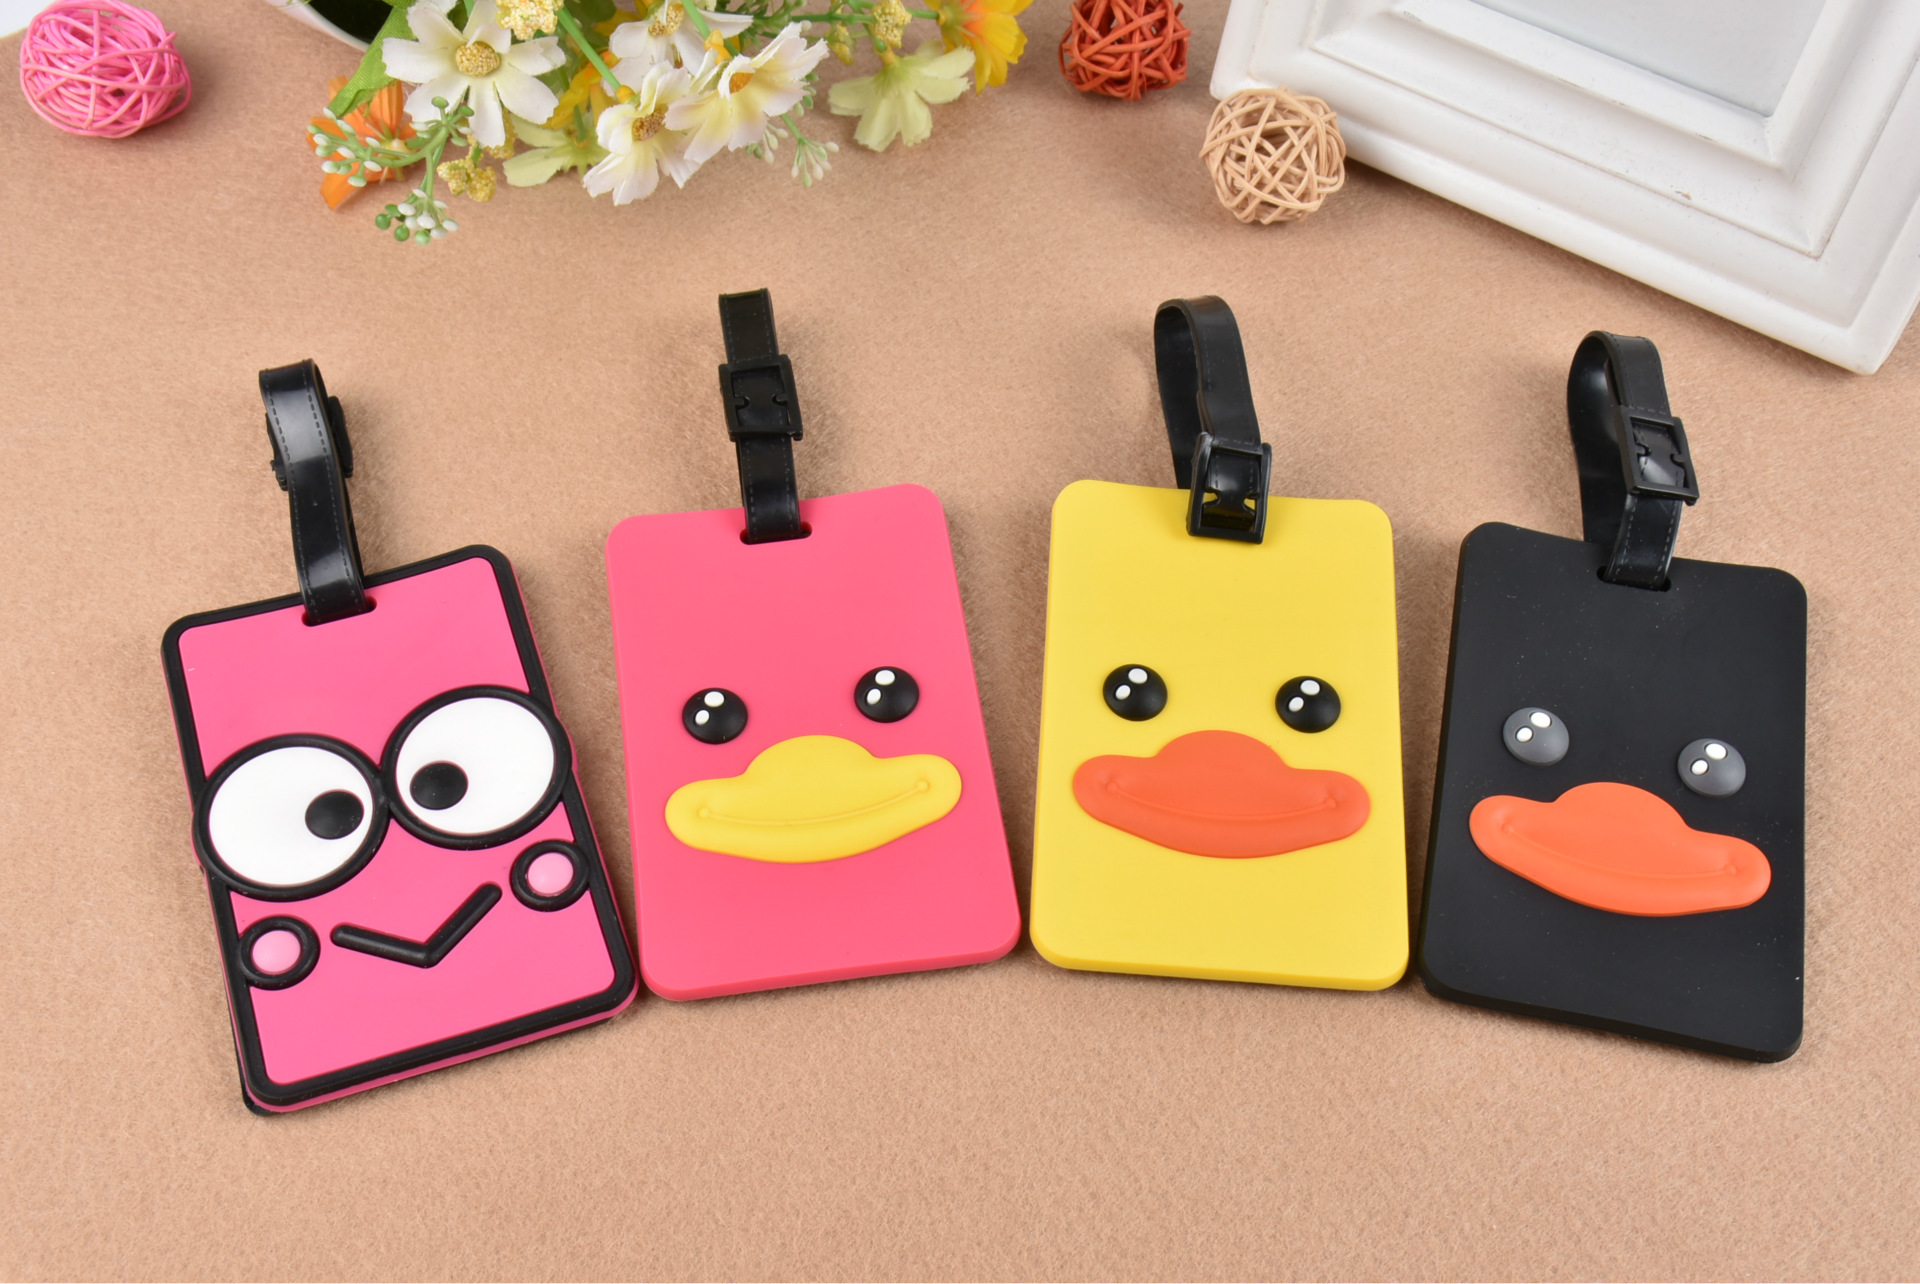 Hot Sale New Suitcase Cartoon Duck Mouth Luggage Tags Design ID Tag Address Holder Identifier Label Travel Accessories